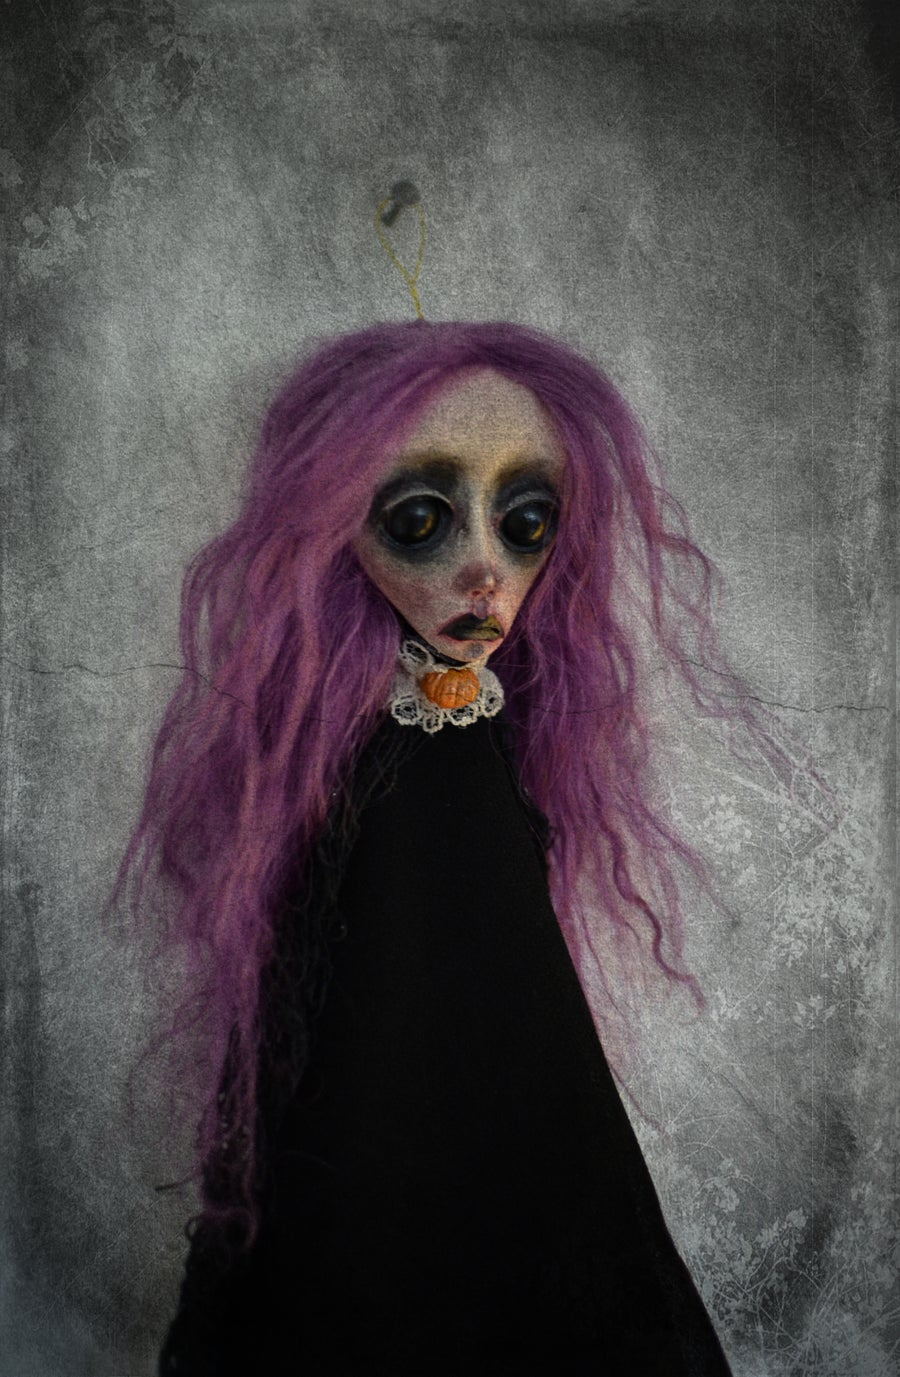 Image of OOAK Handmade art doll head ornament CATALINA. Ghost doll, dark doll, gothic doll, Halloween doll